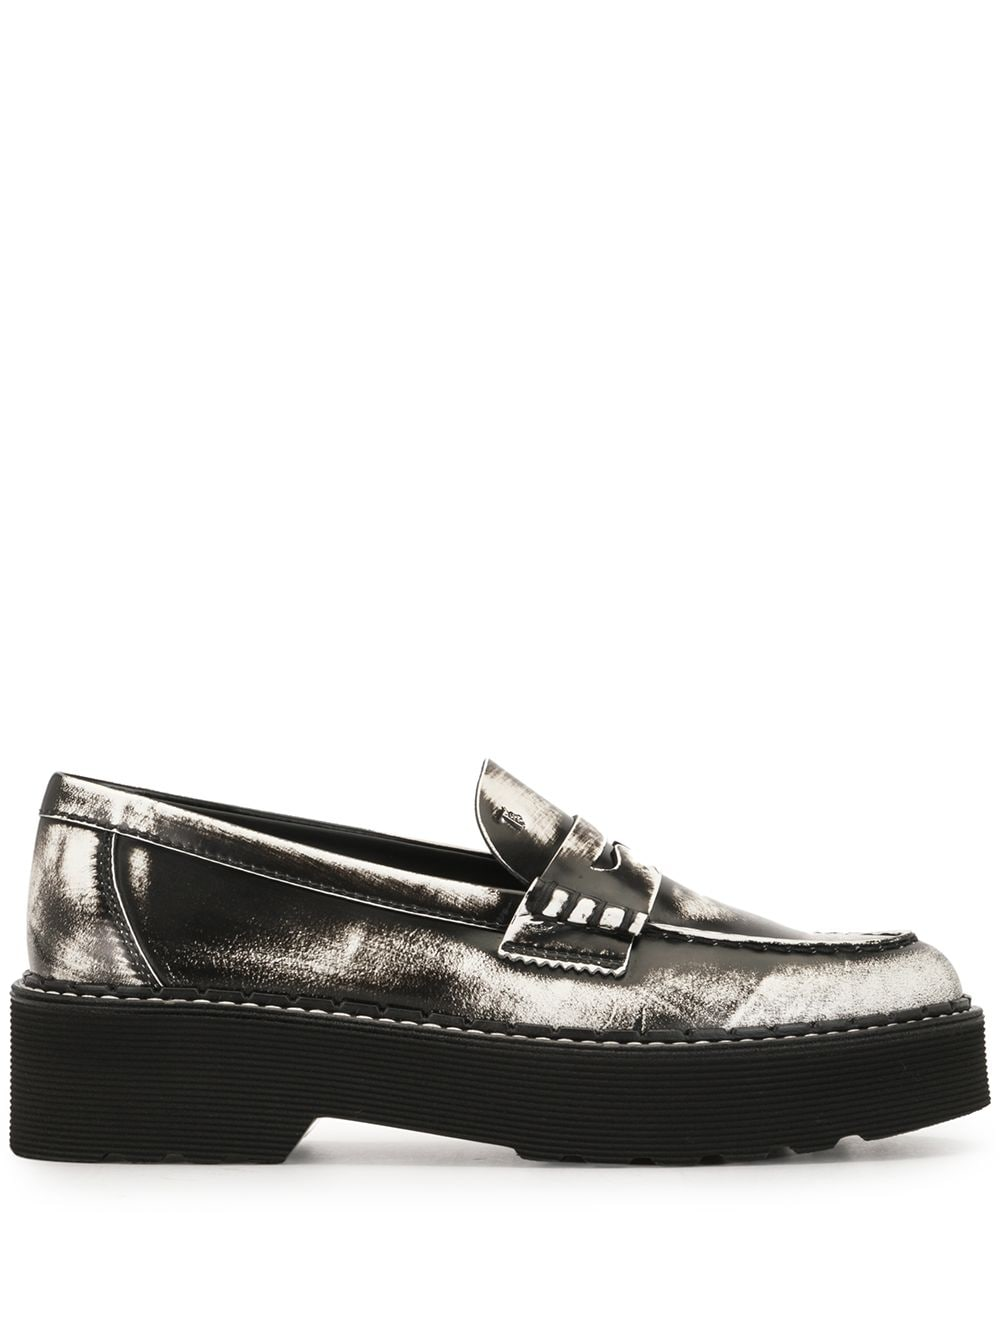 TOD'S WOMEN CARRARMATO 80C PAINTED PENNY LOAFER